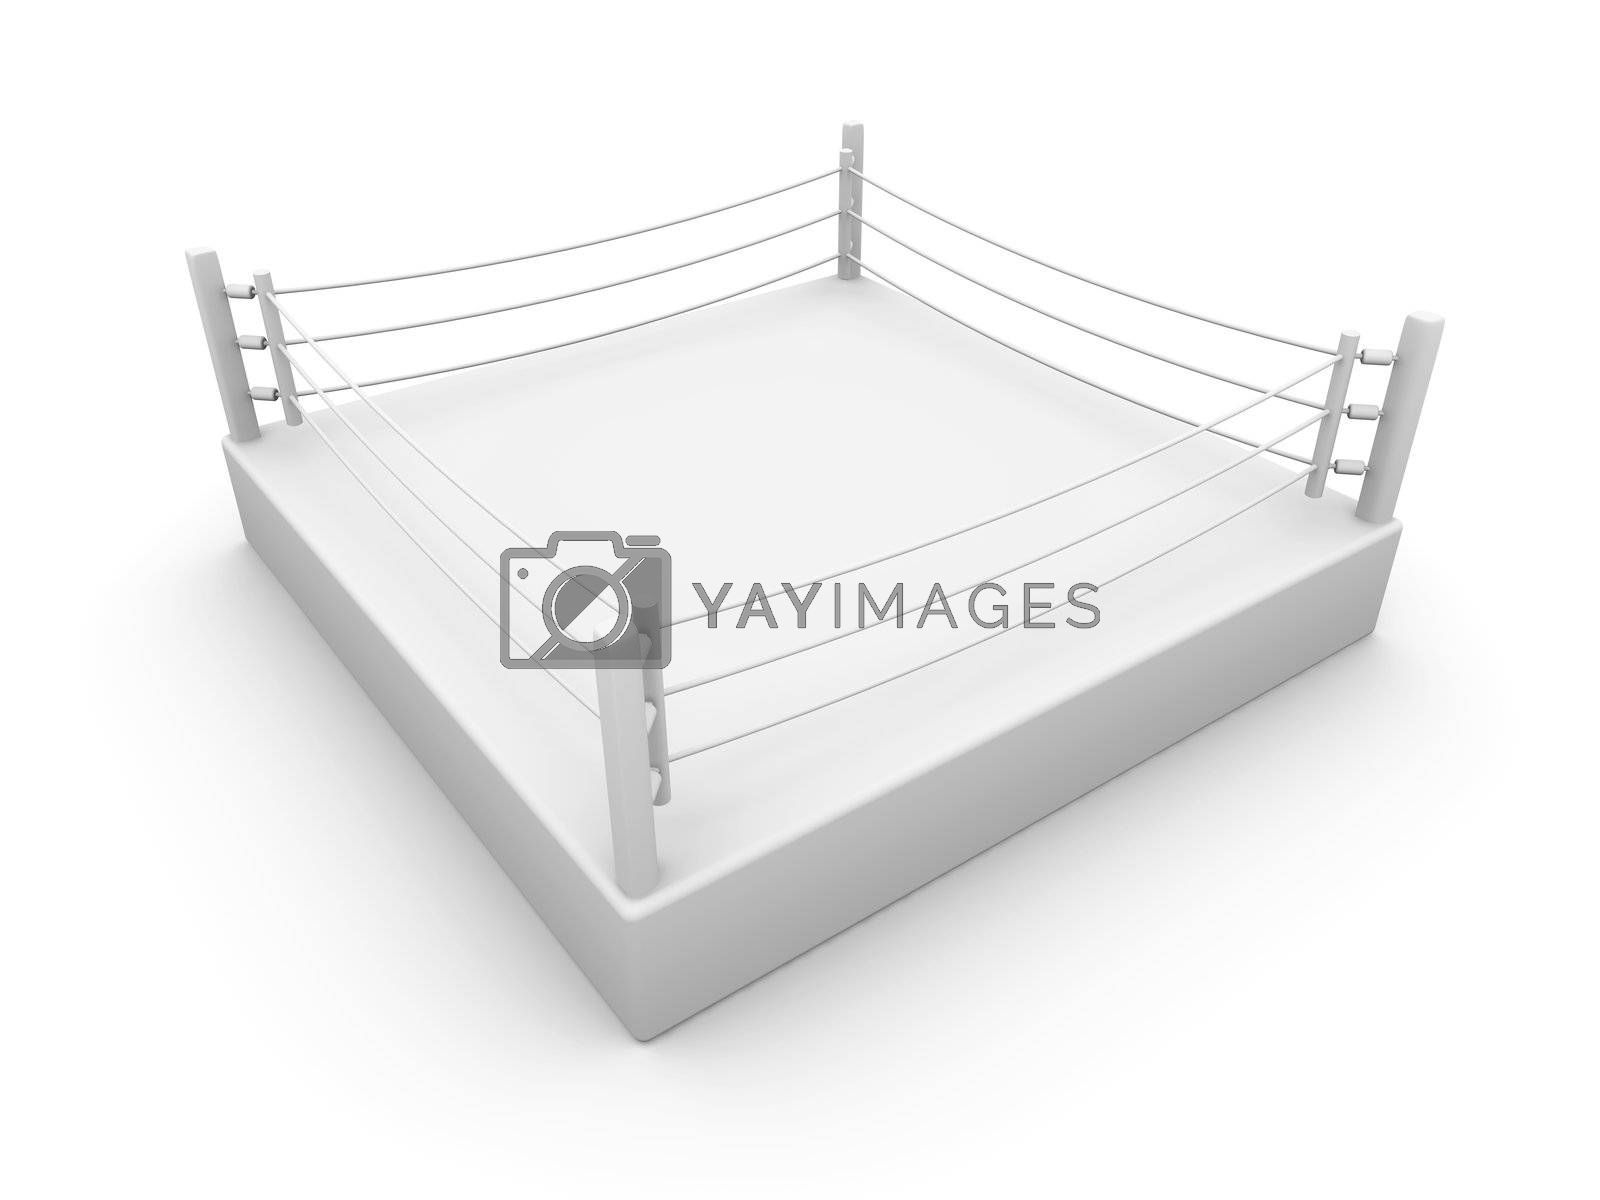 3D Illustration. Isolated on white.